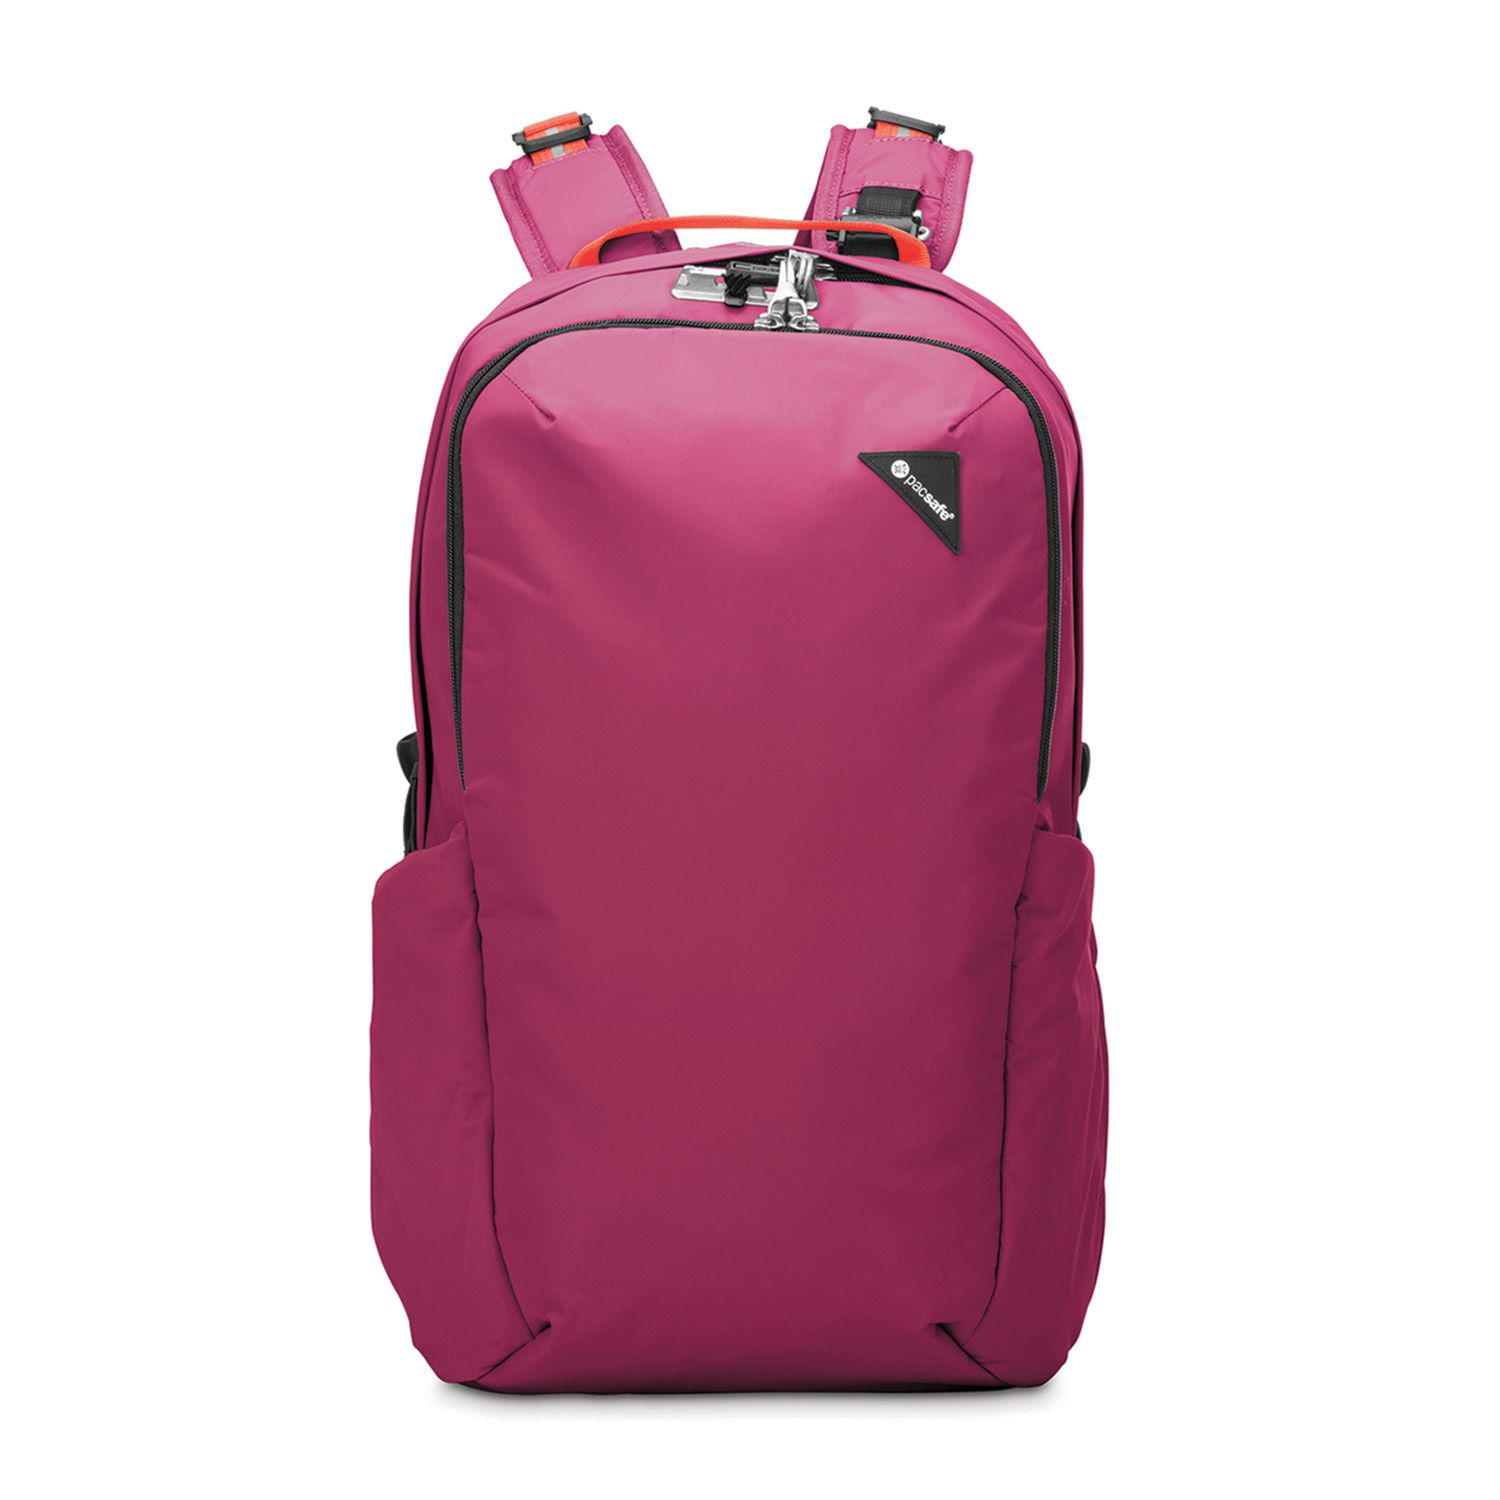 994c3166044 Cycling Backpacks - Backpacks for Commuters 2019